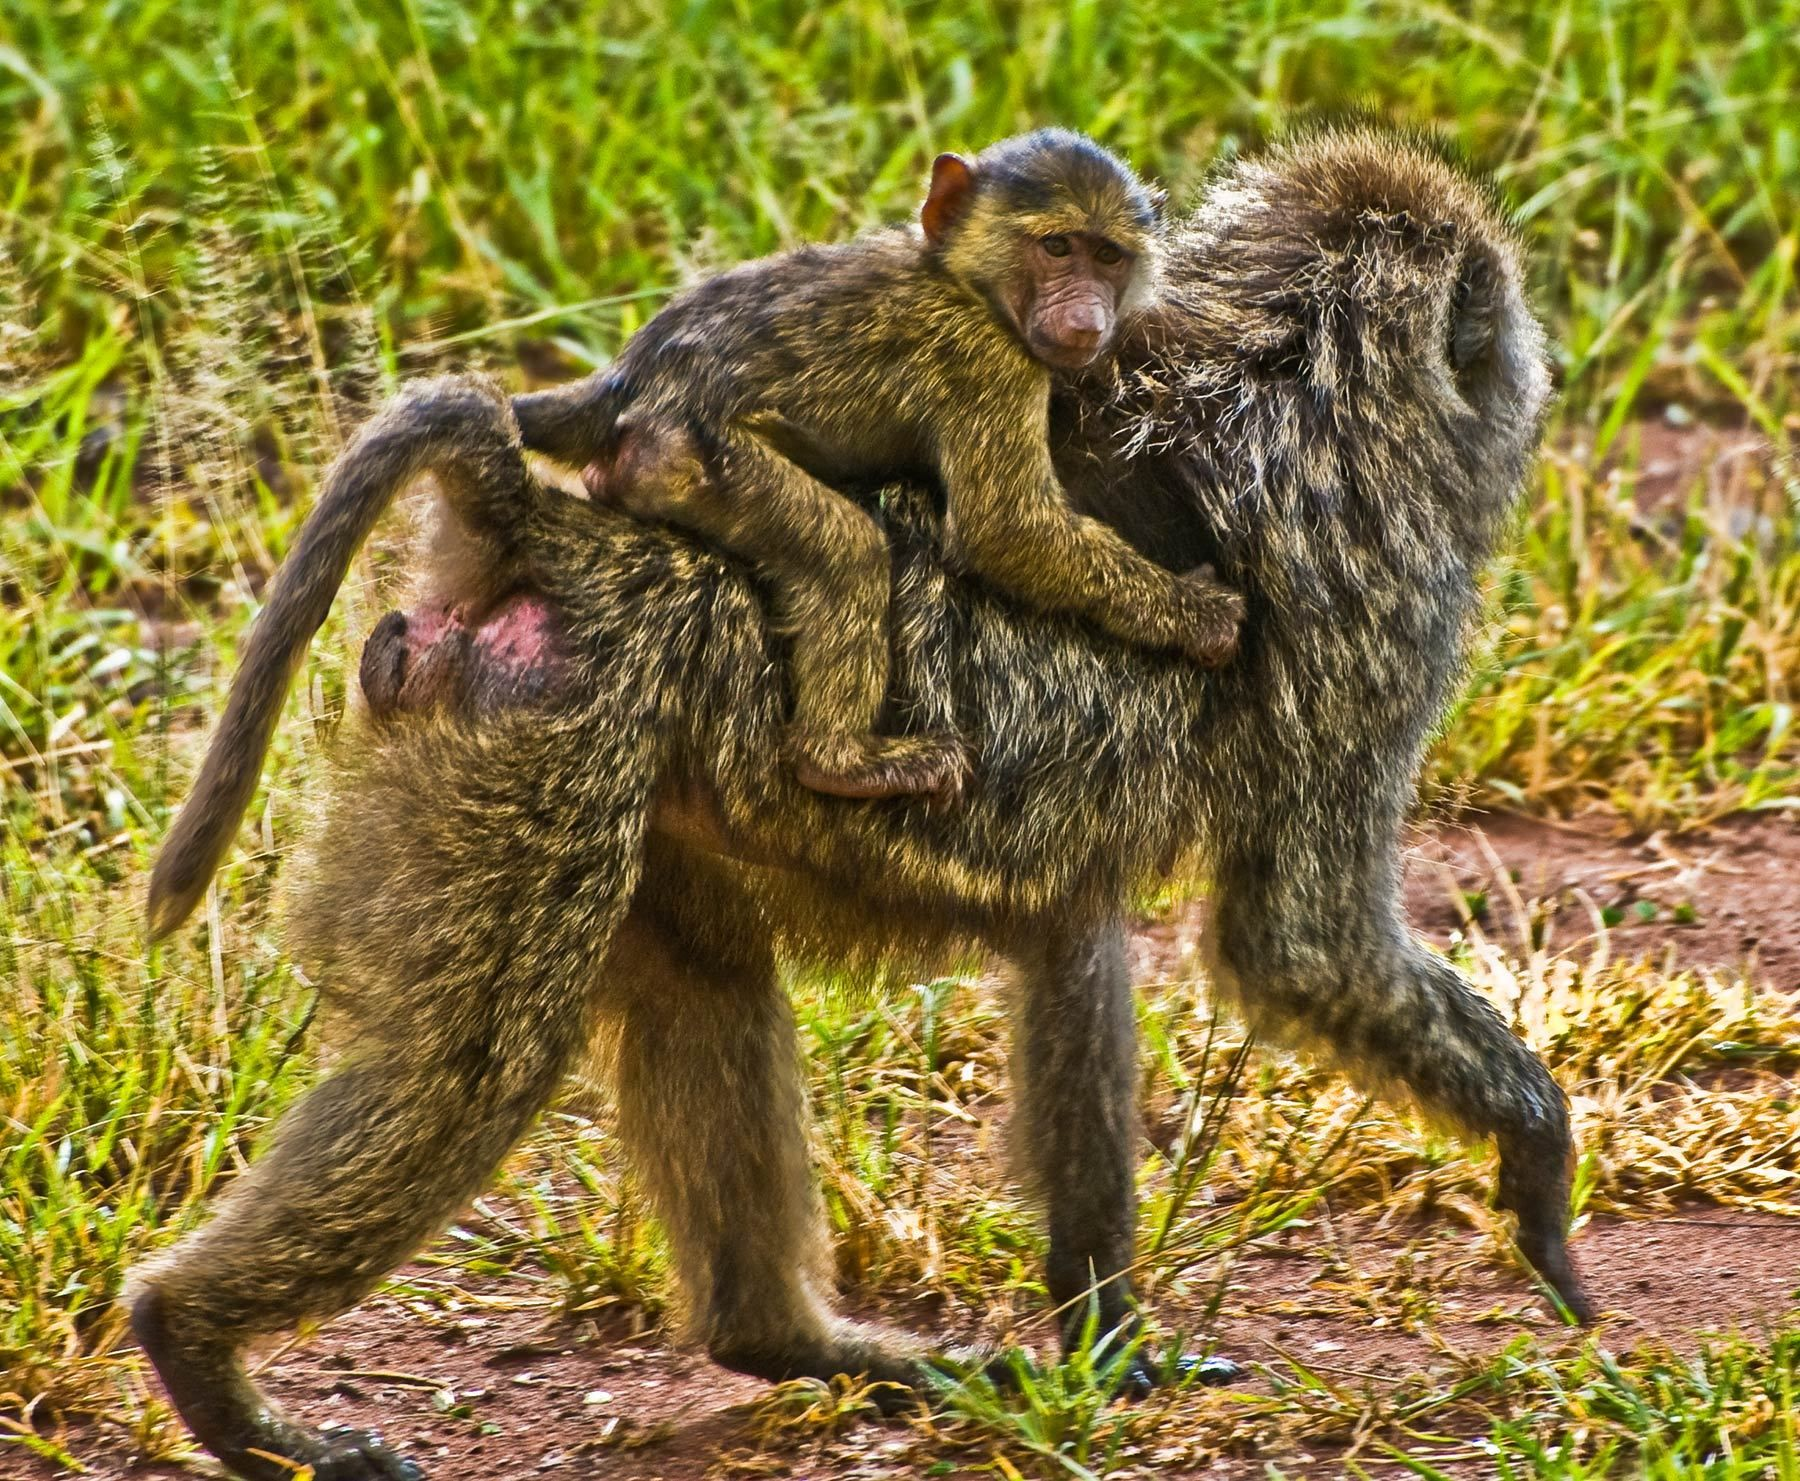 Baby Baboon on Mother's back, Serengeti National Park, Tanzania